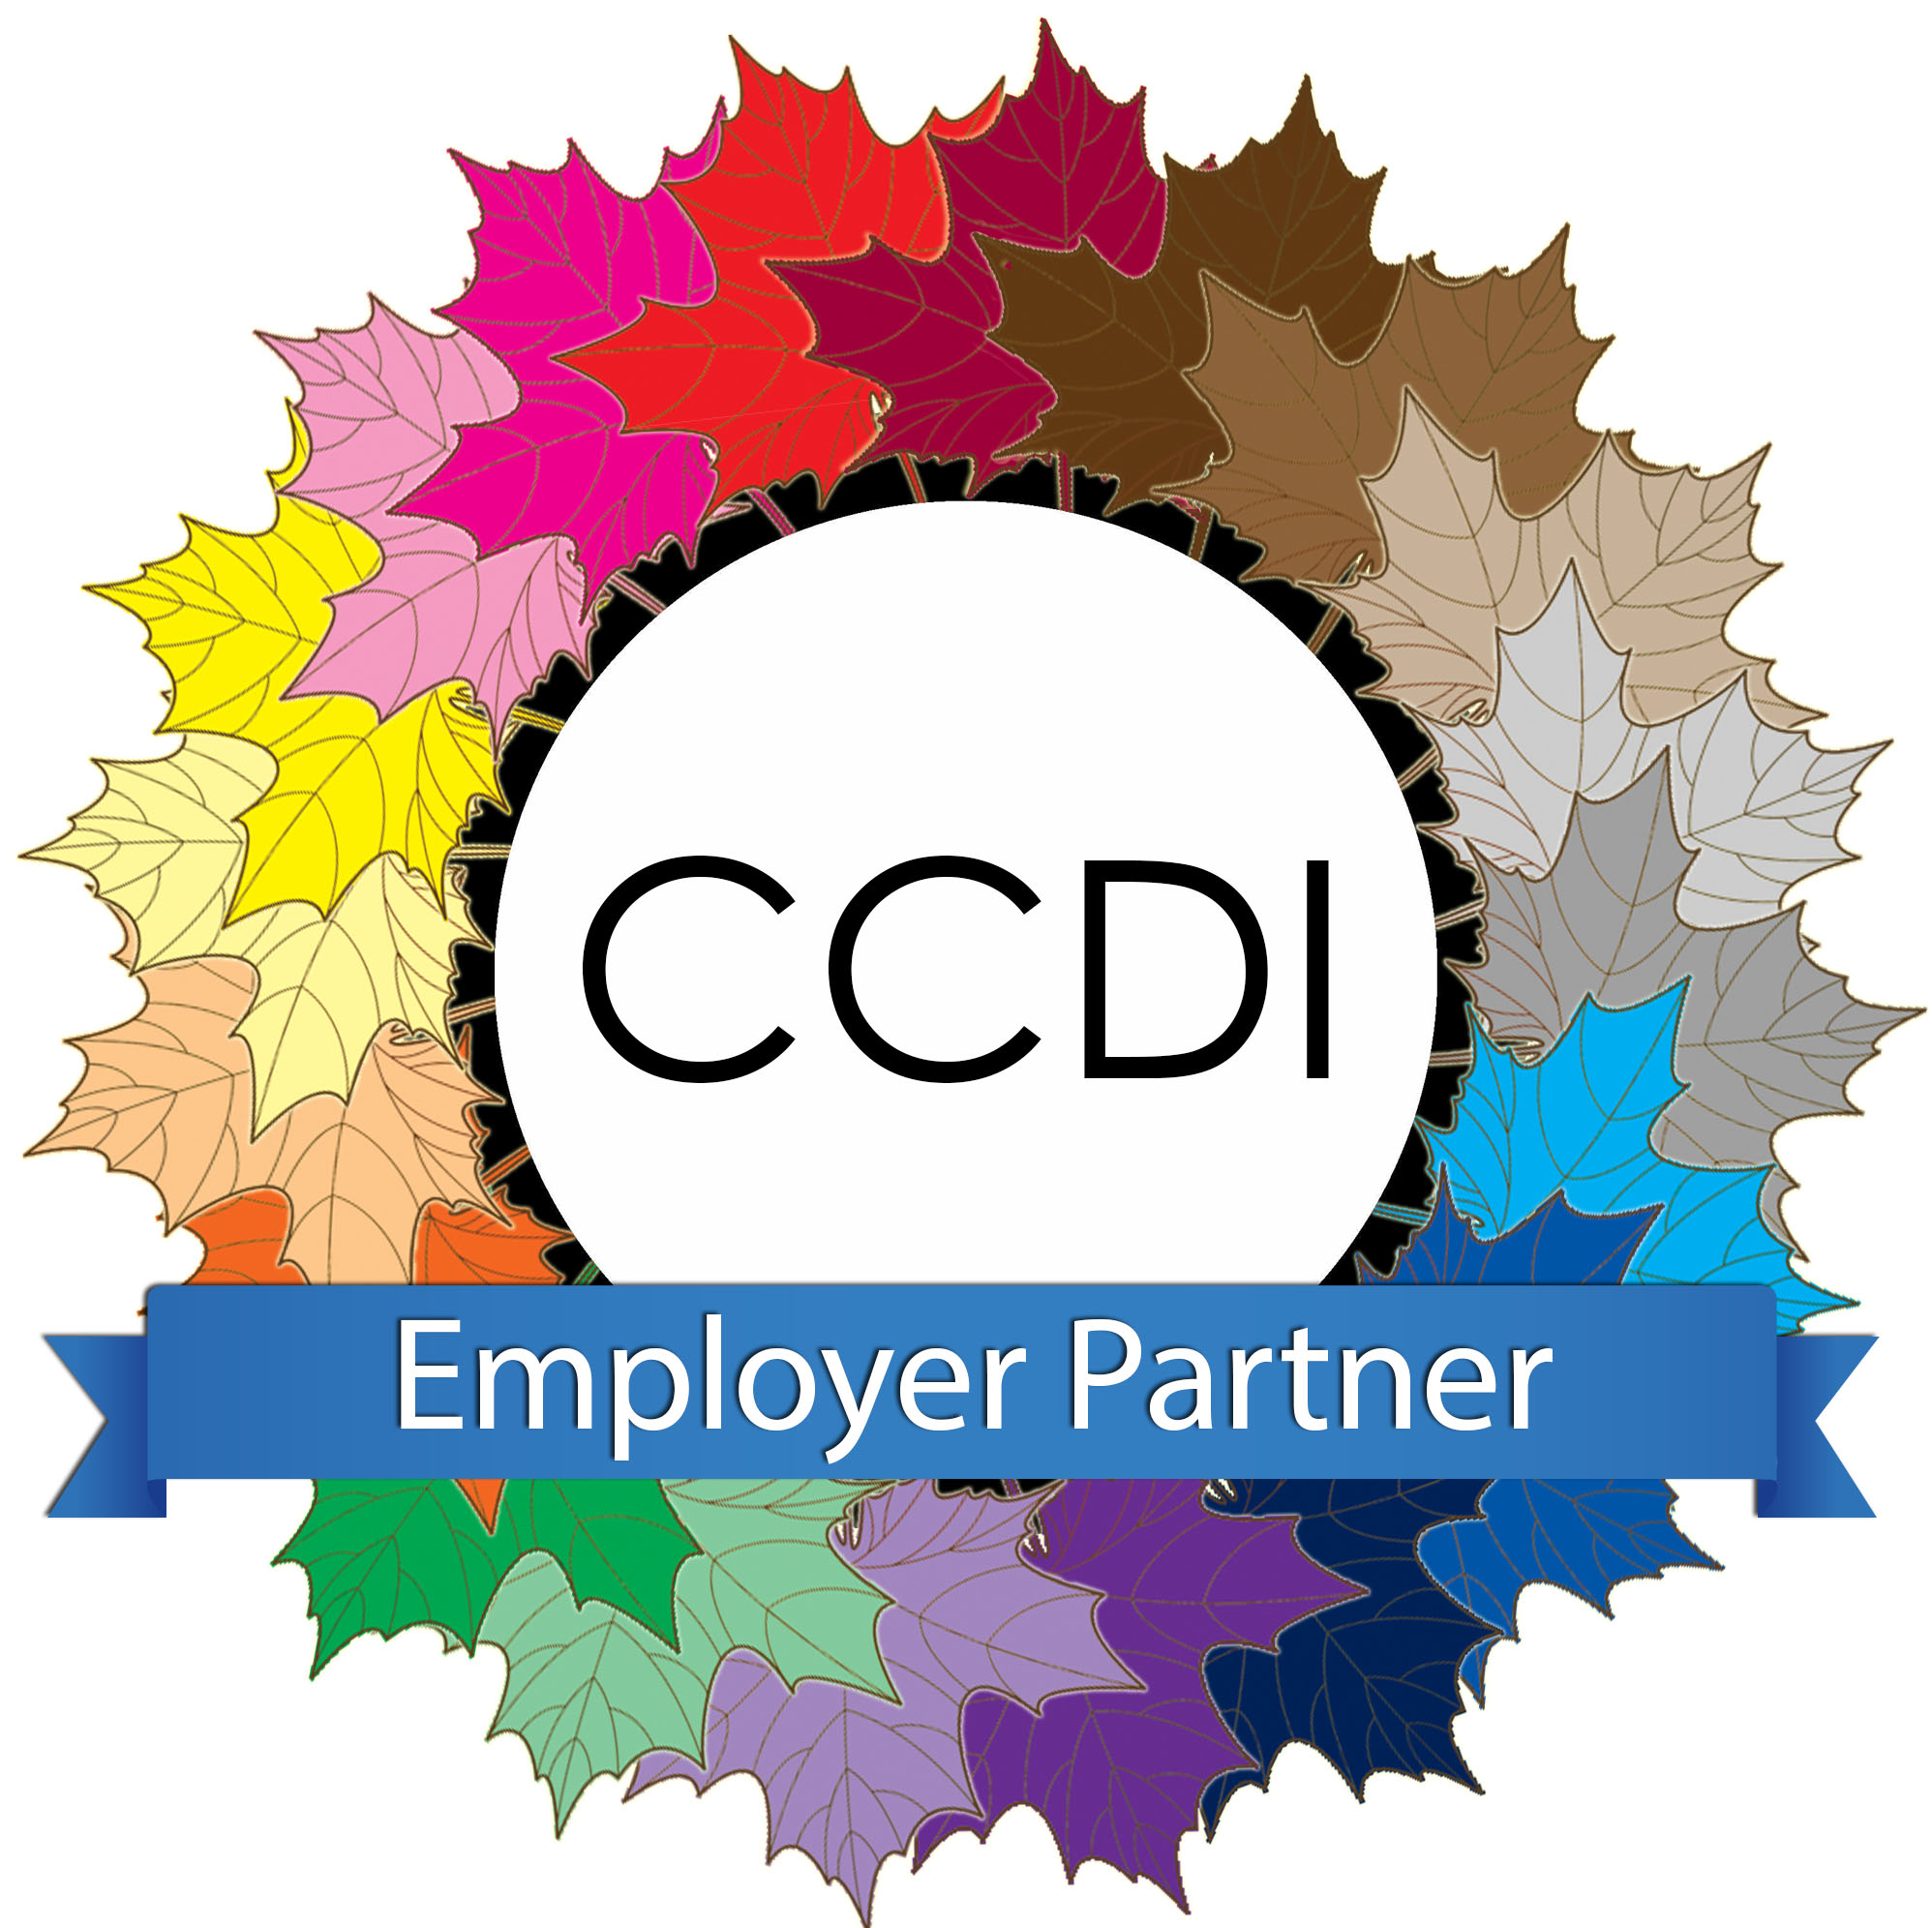 CCDI Employer Partner